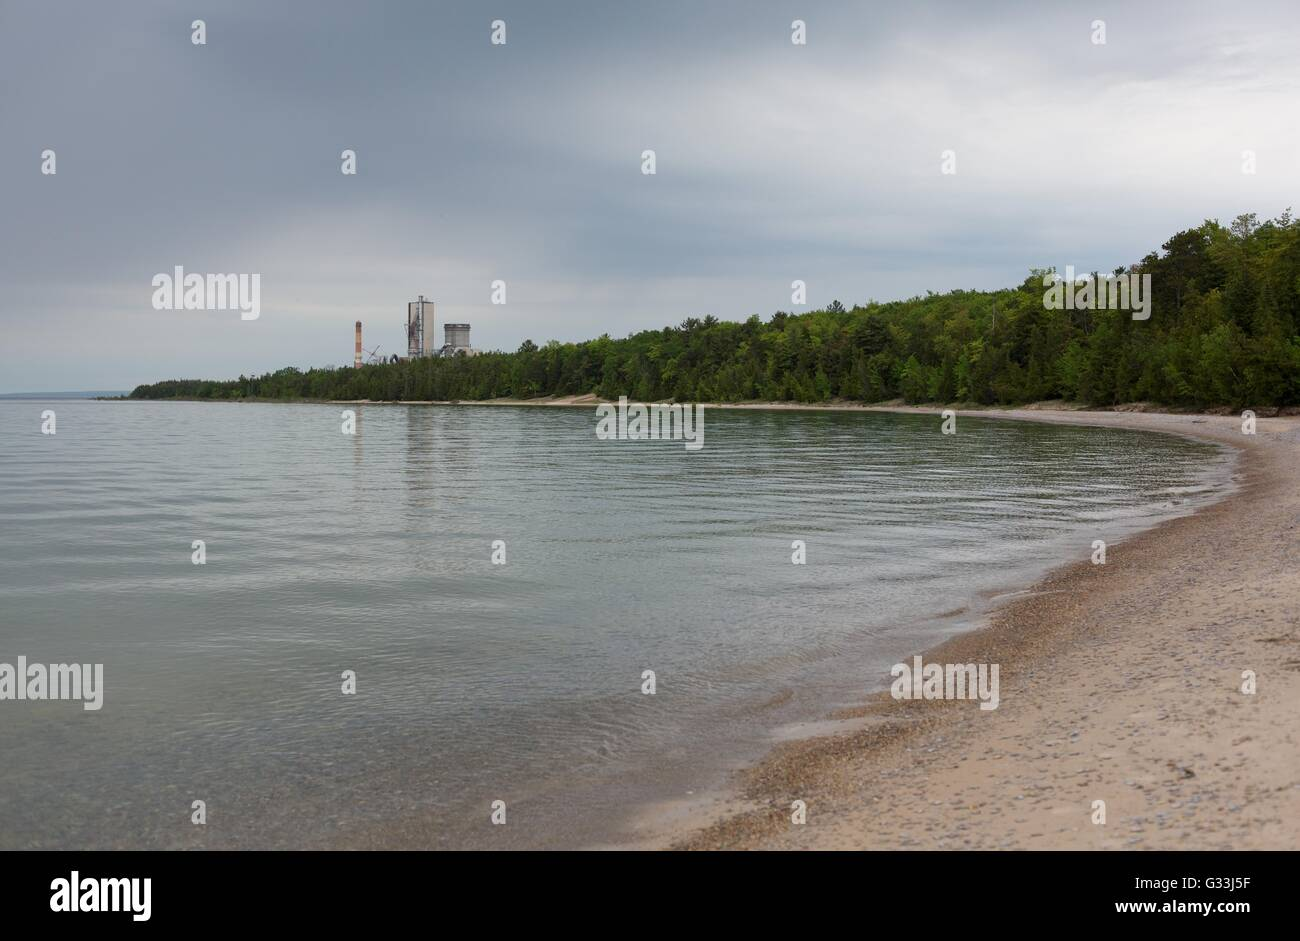 The shoreline of Lake Michigan near Charlevoix, Michigan, USA. - Stock Image